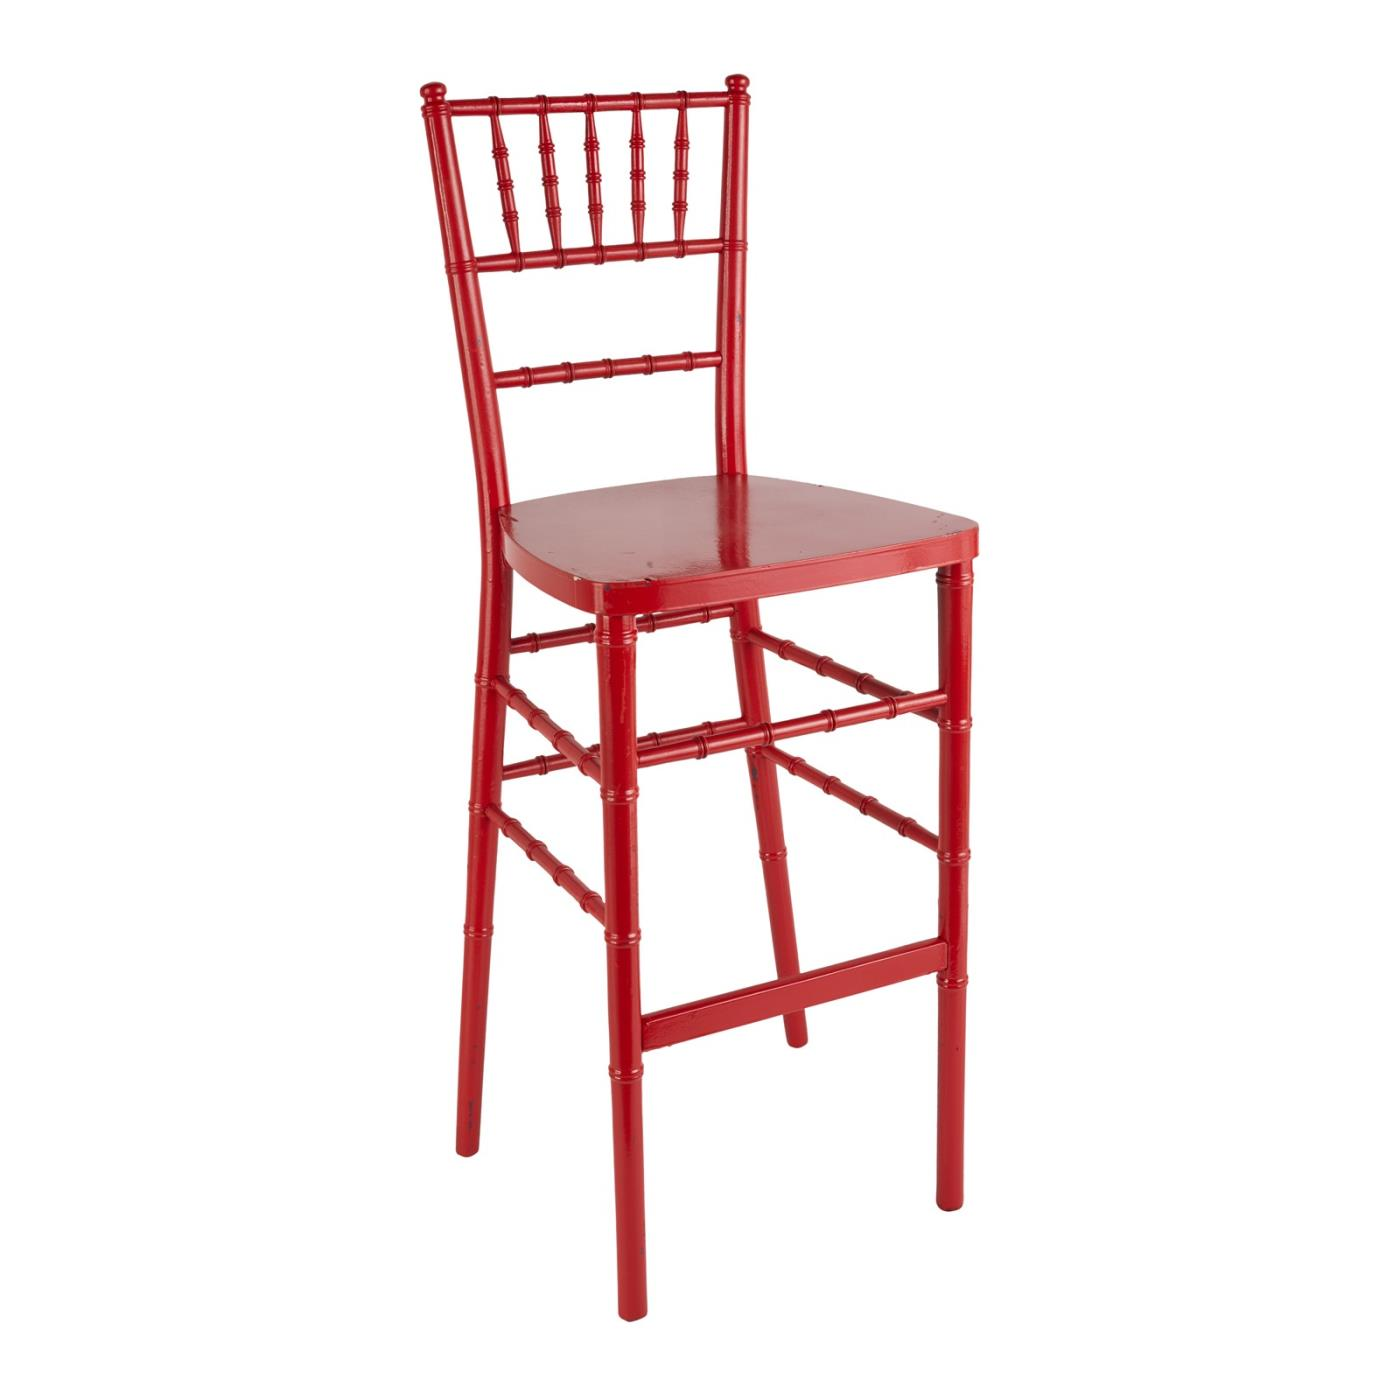 Reception Stool - Red